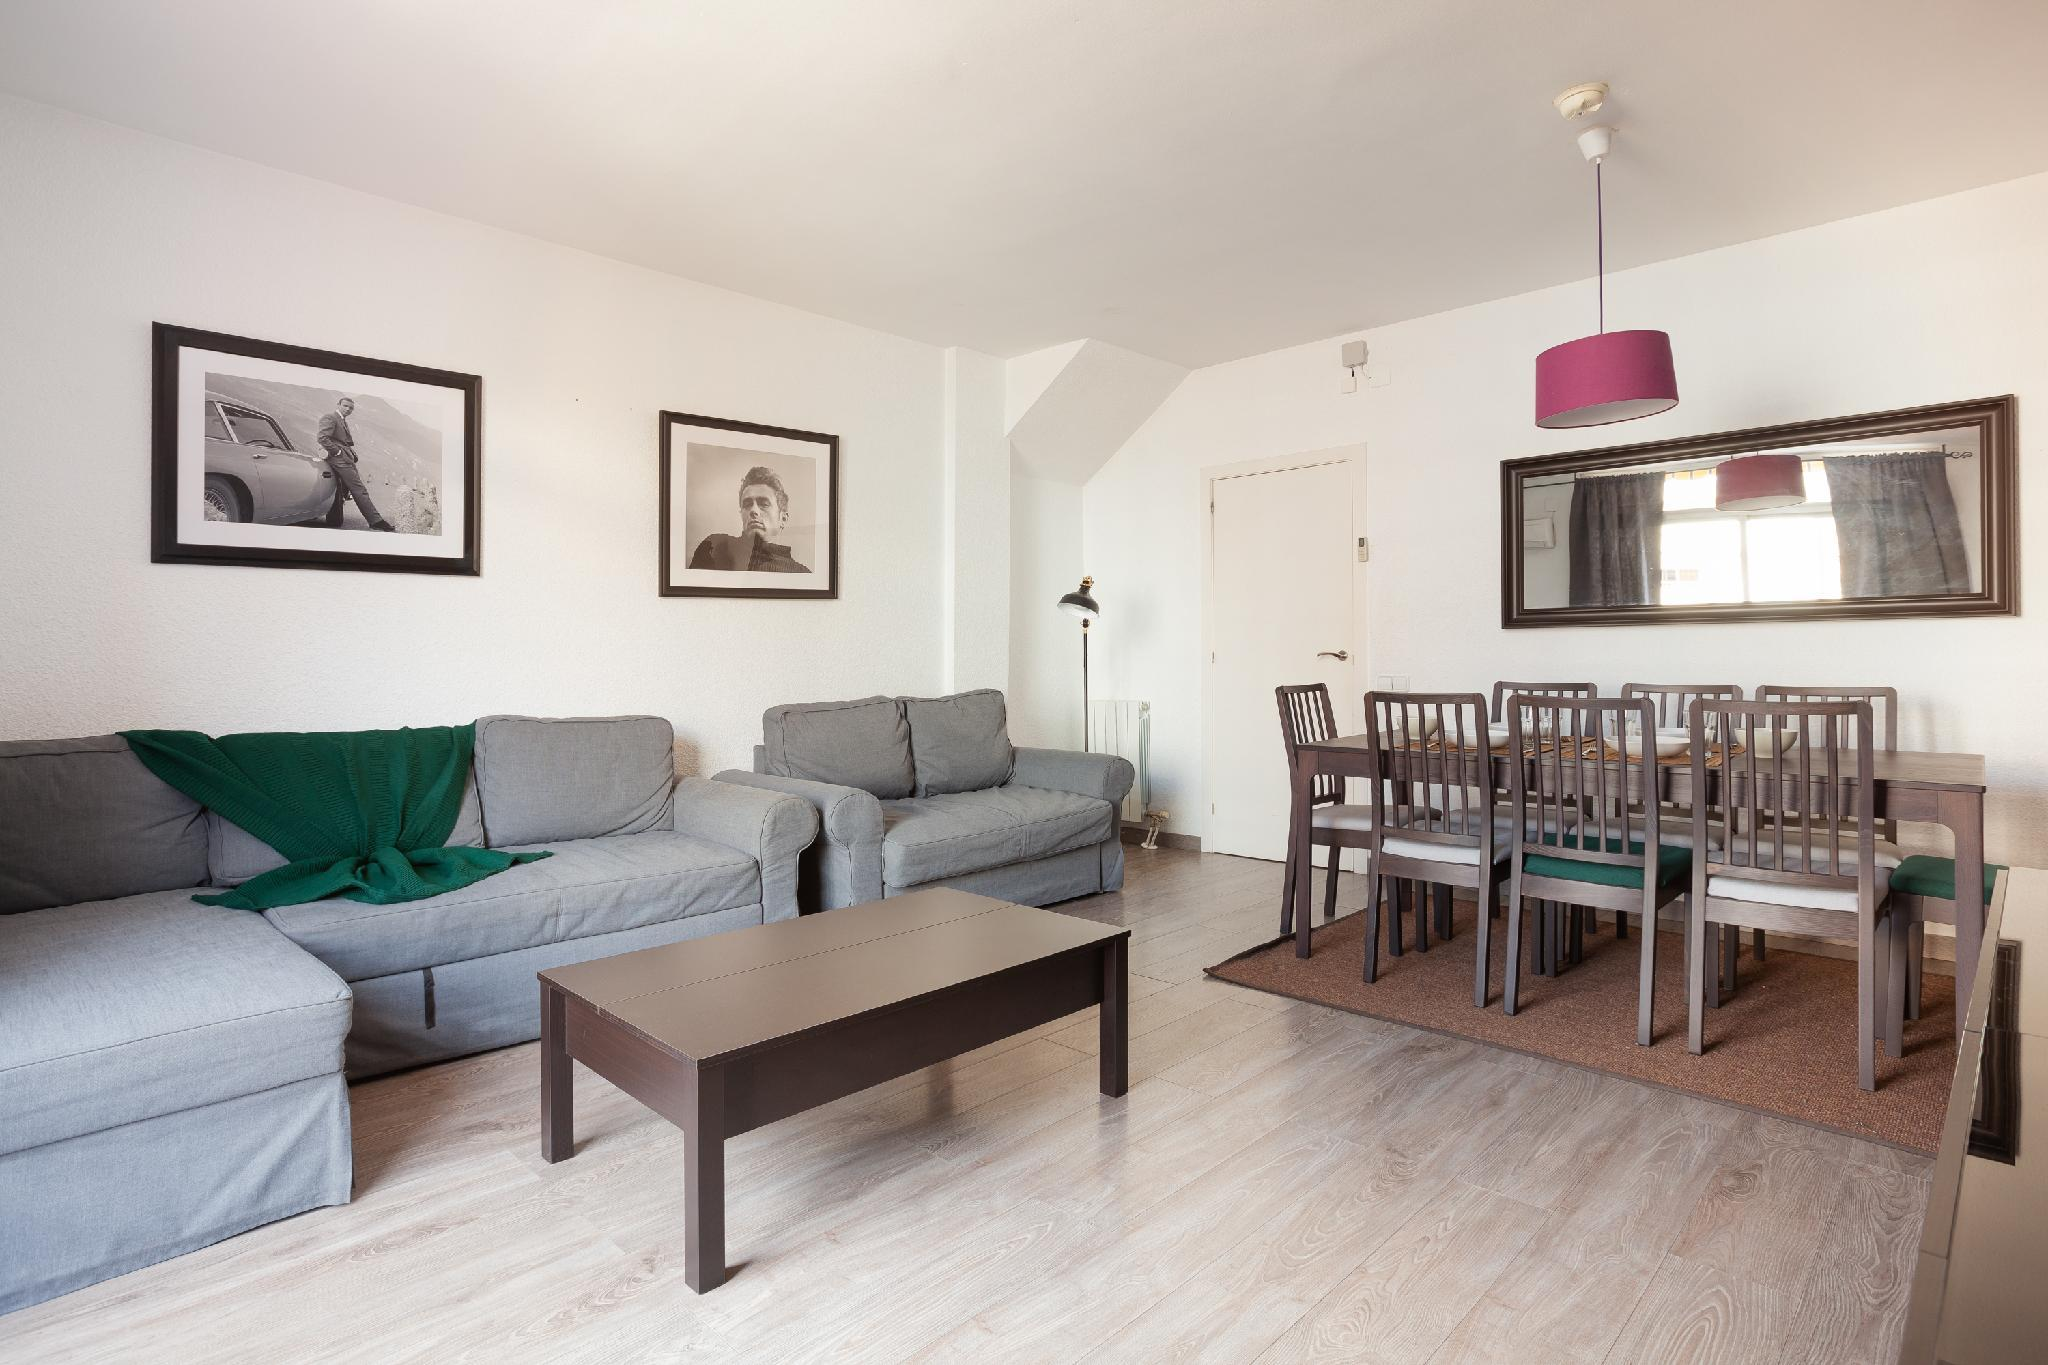 Spacious DUPLEX with TERRACE perfect for families!